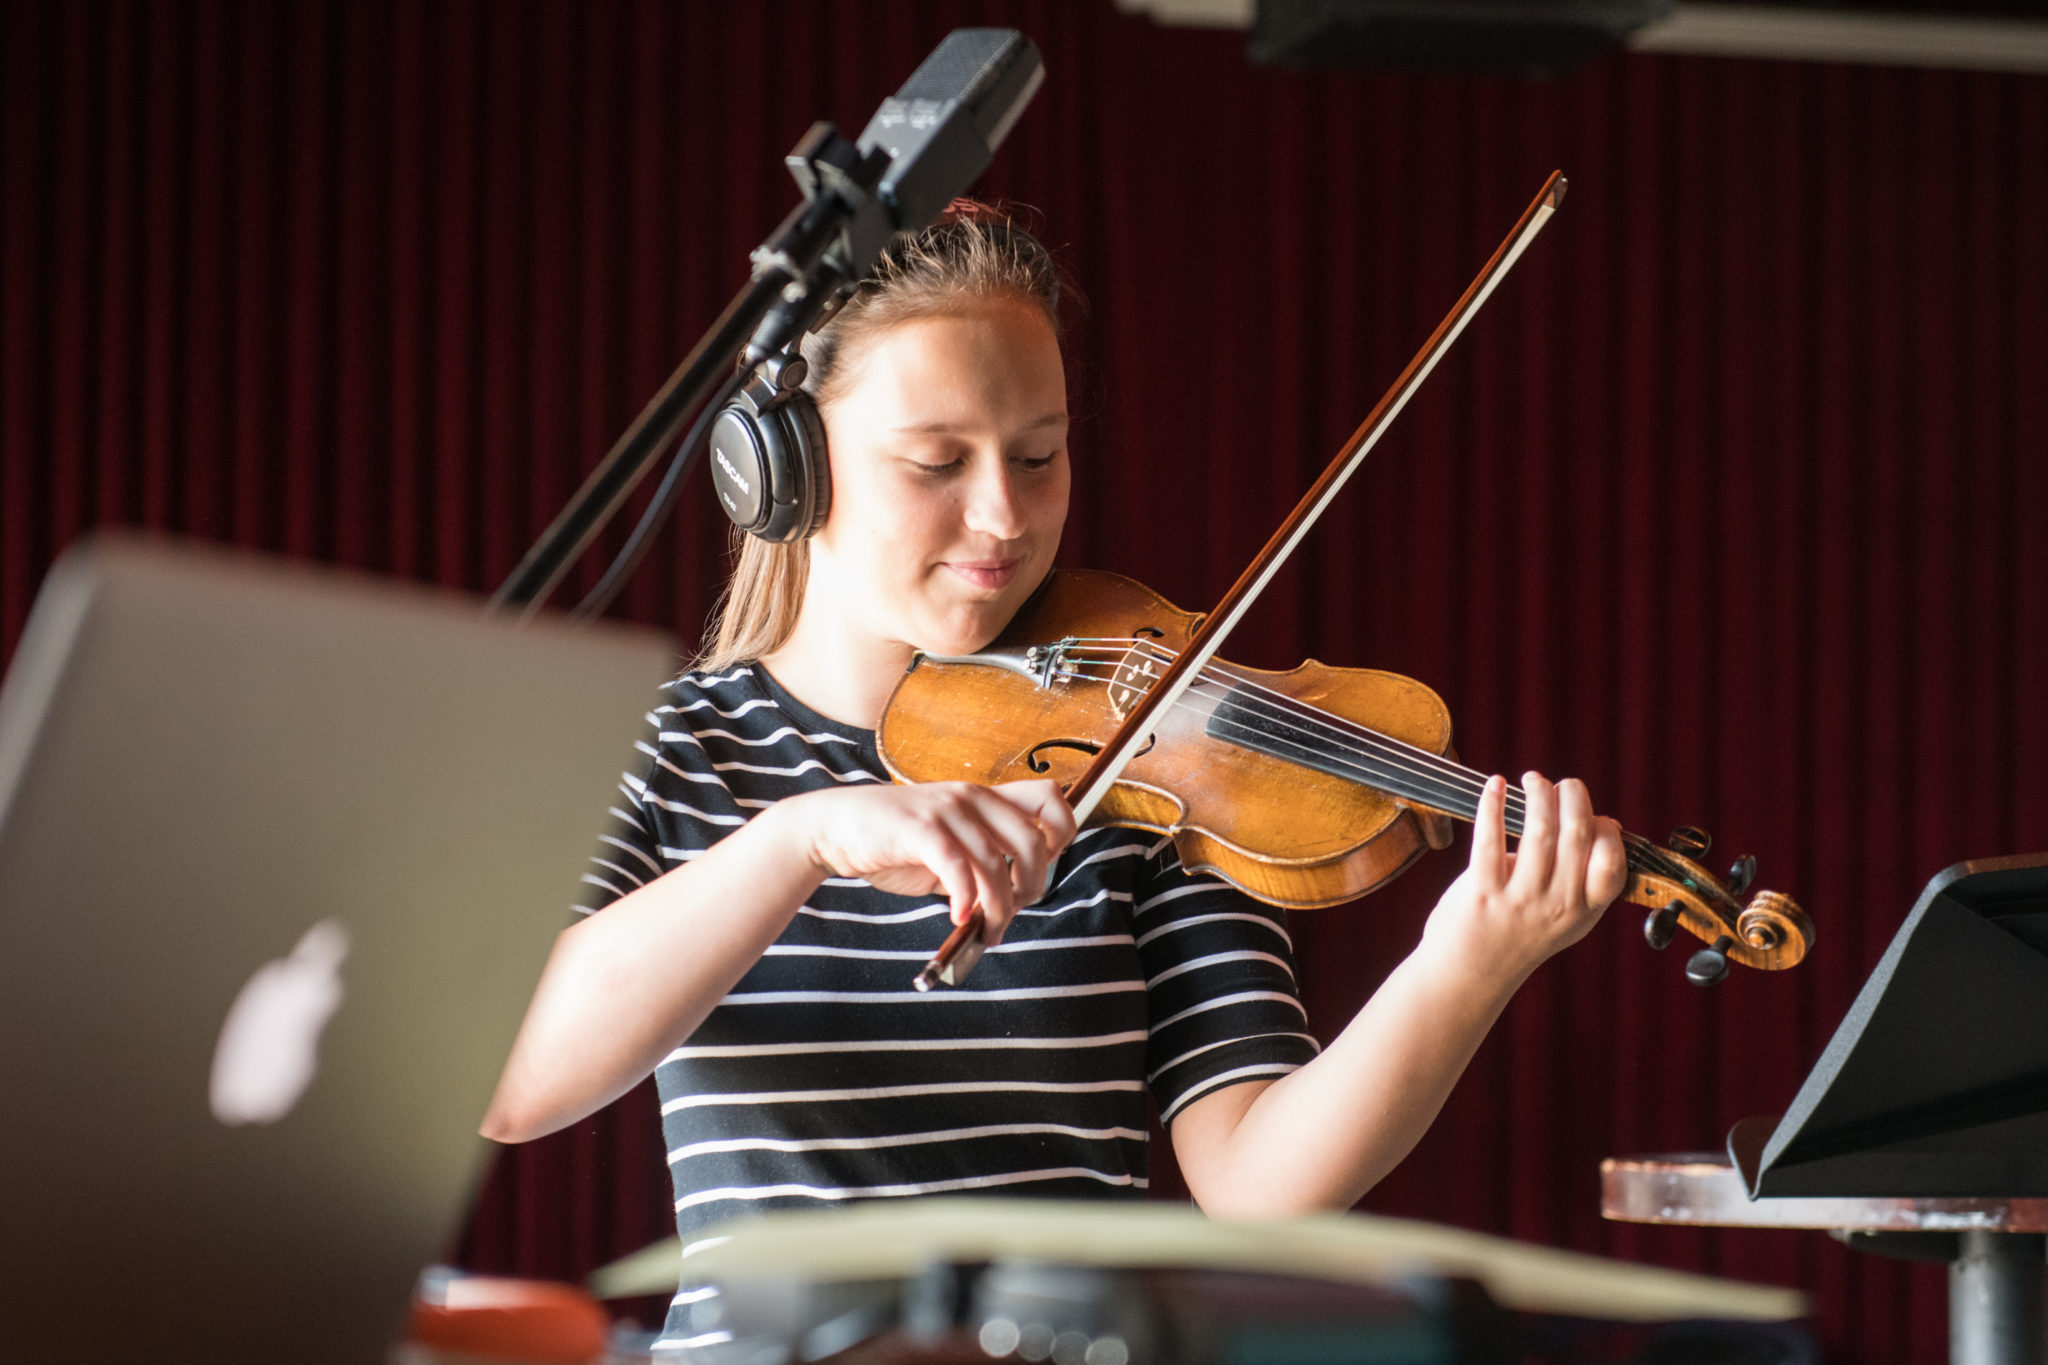 A student wears over the headphones as she plays violin behind a recording microphone.